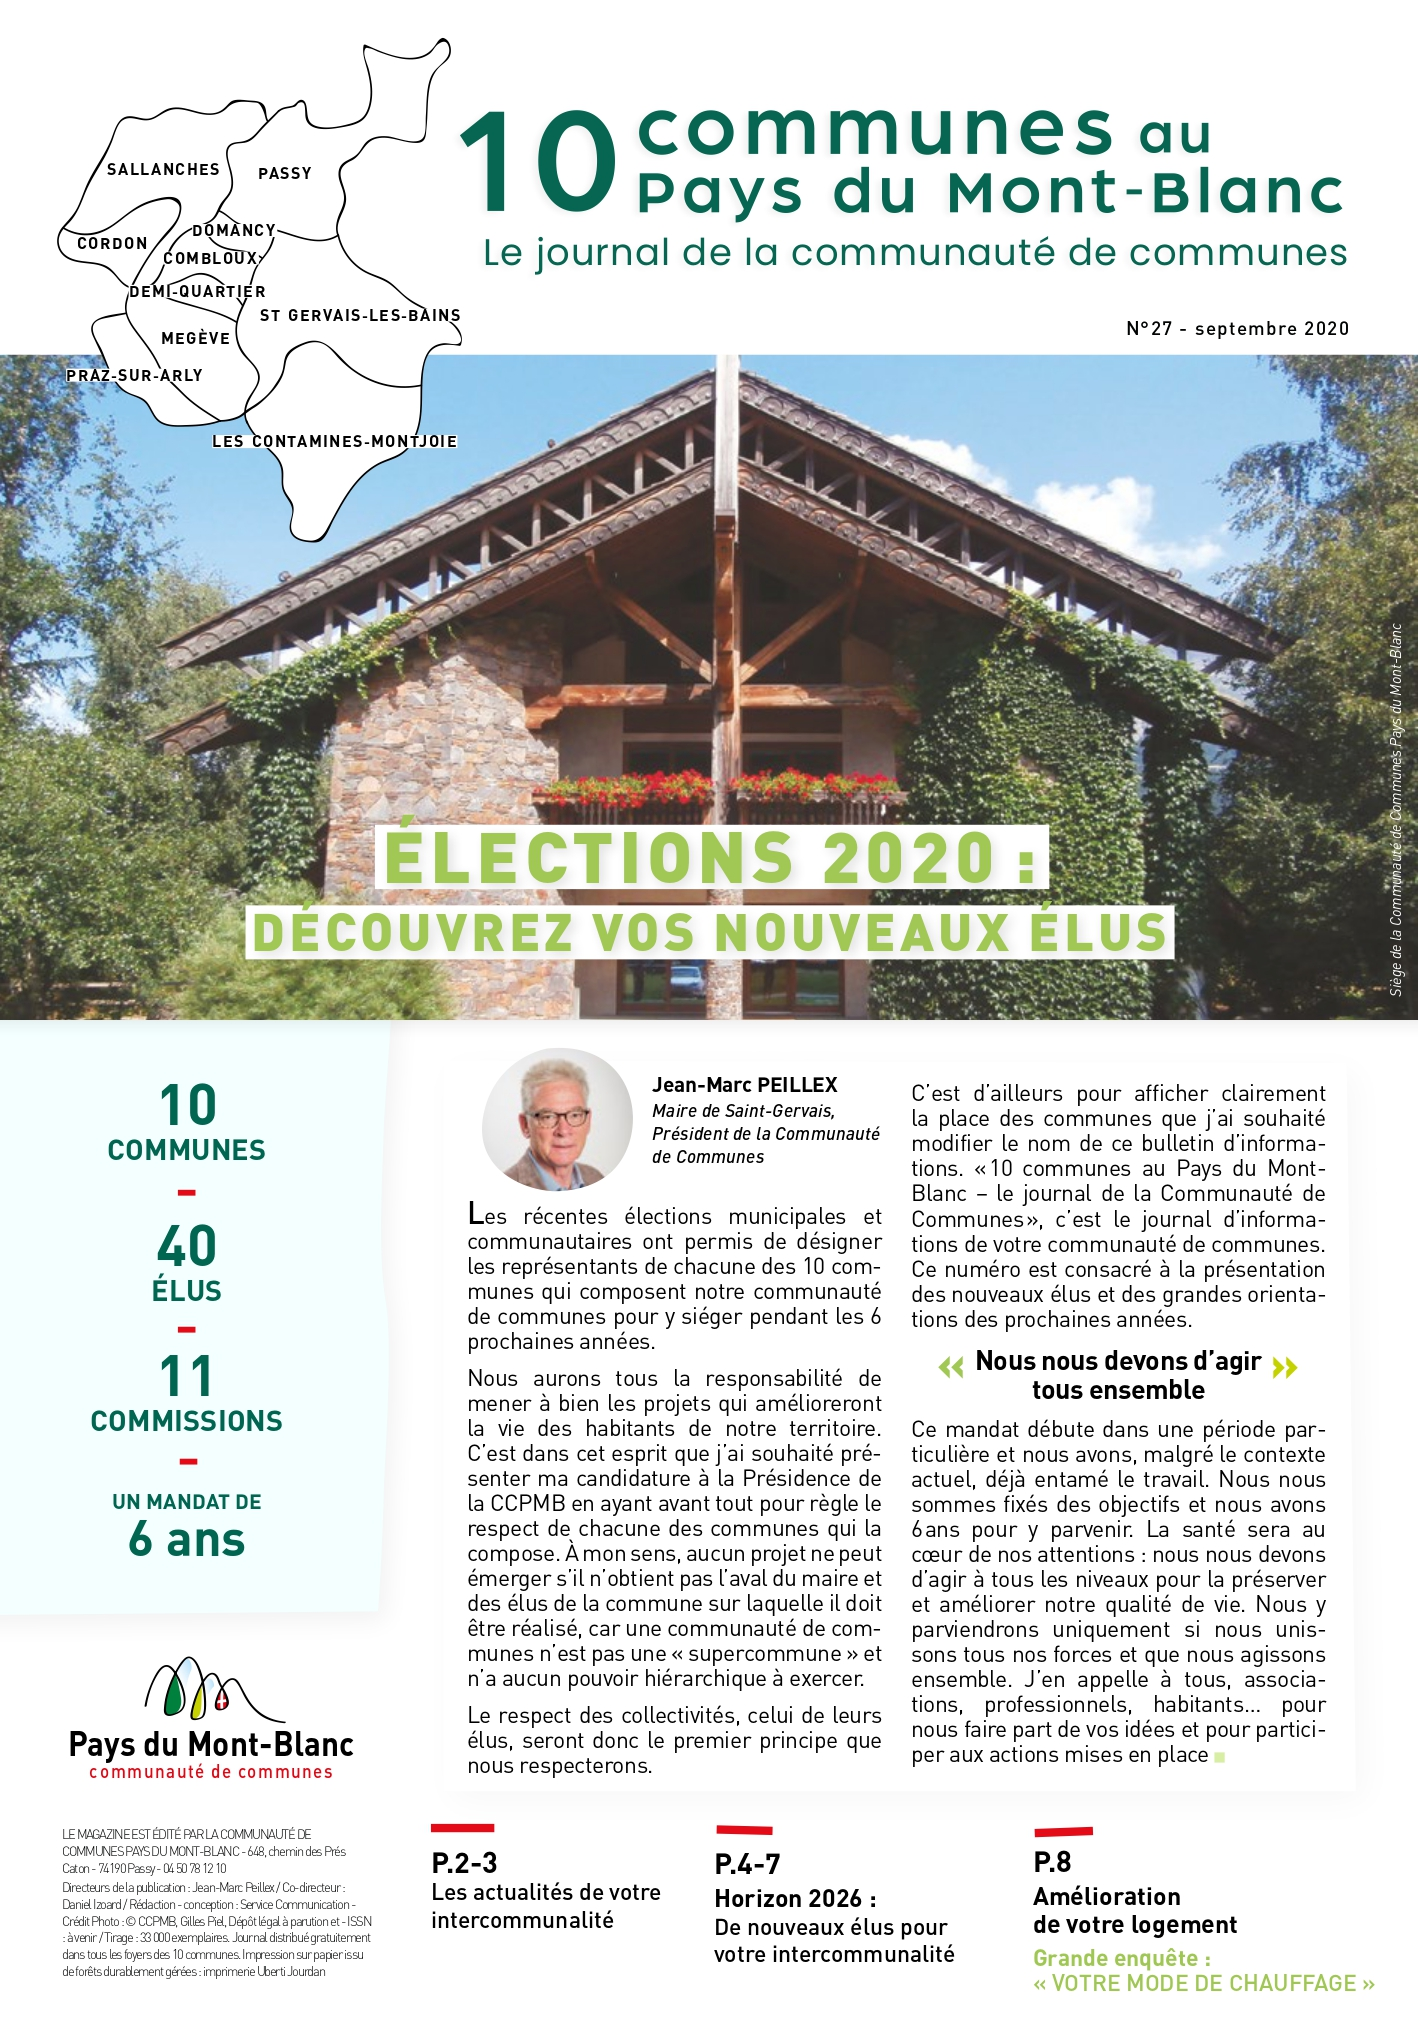 BULLETIN N°27 10 COMMUNES AU PAYS DU MONT-BLANC light_pages-to-jpg-0001